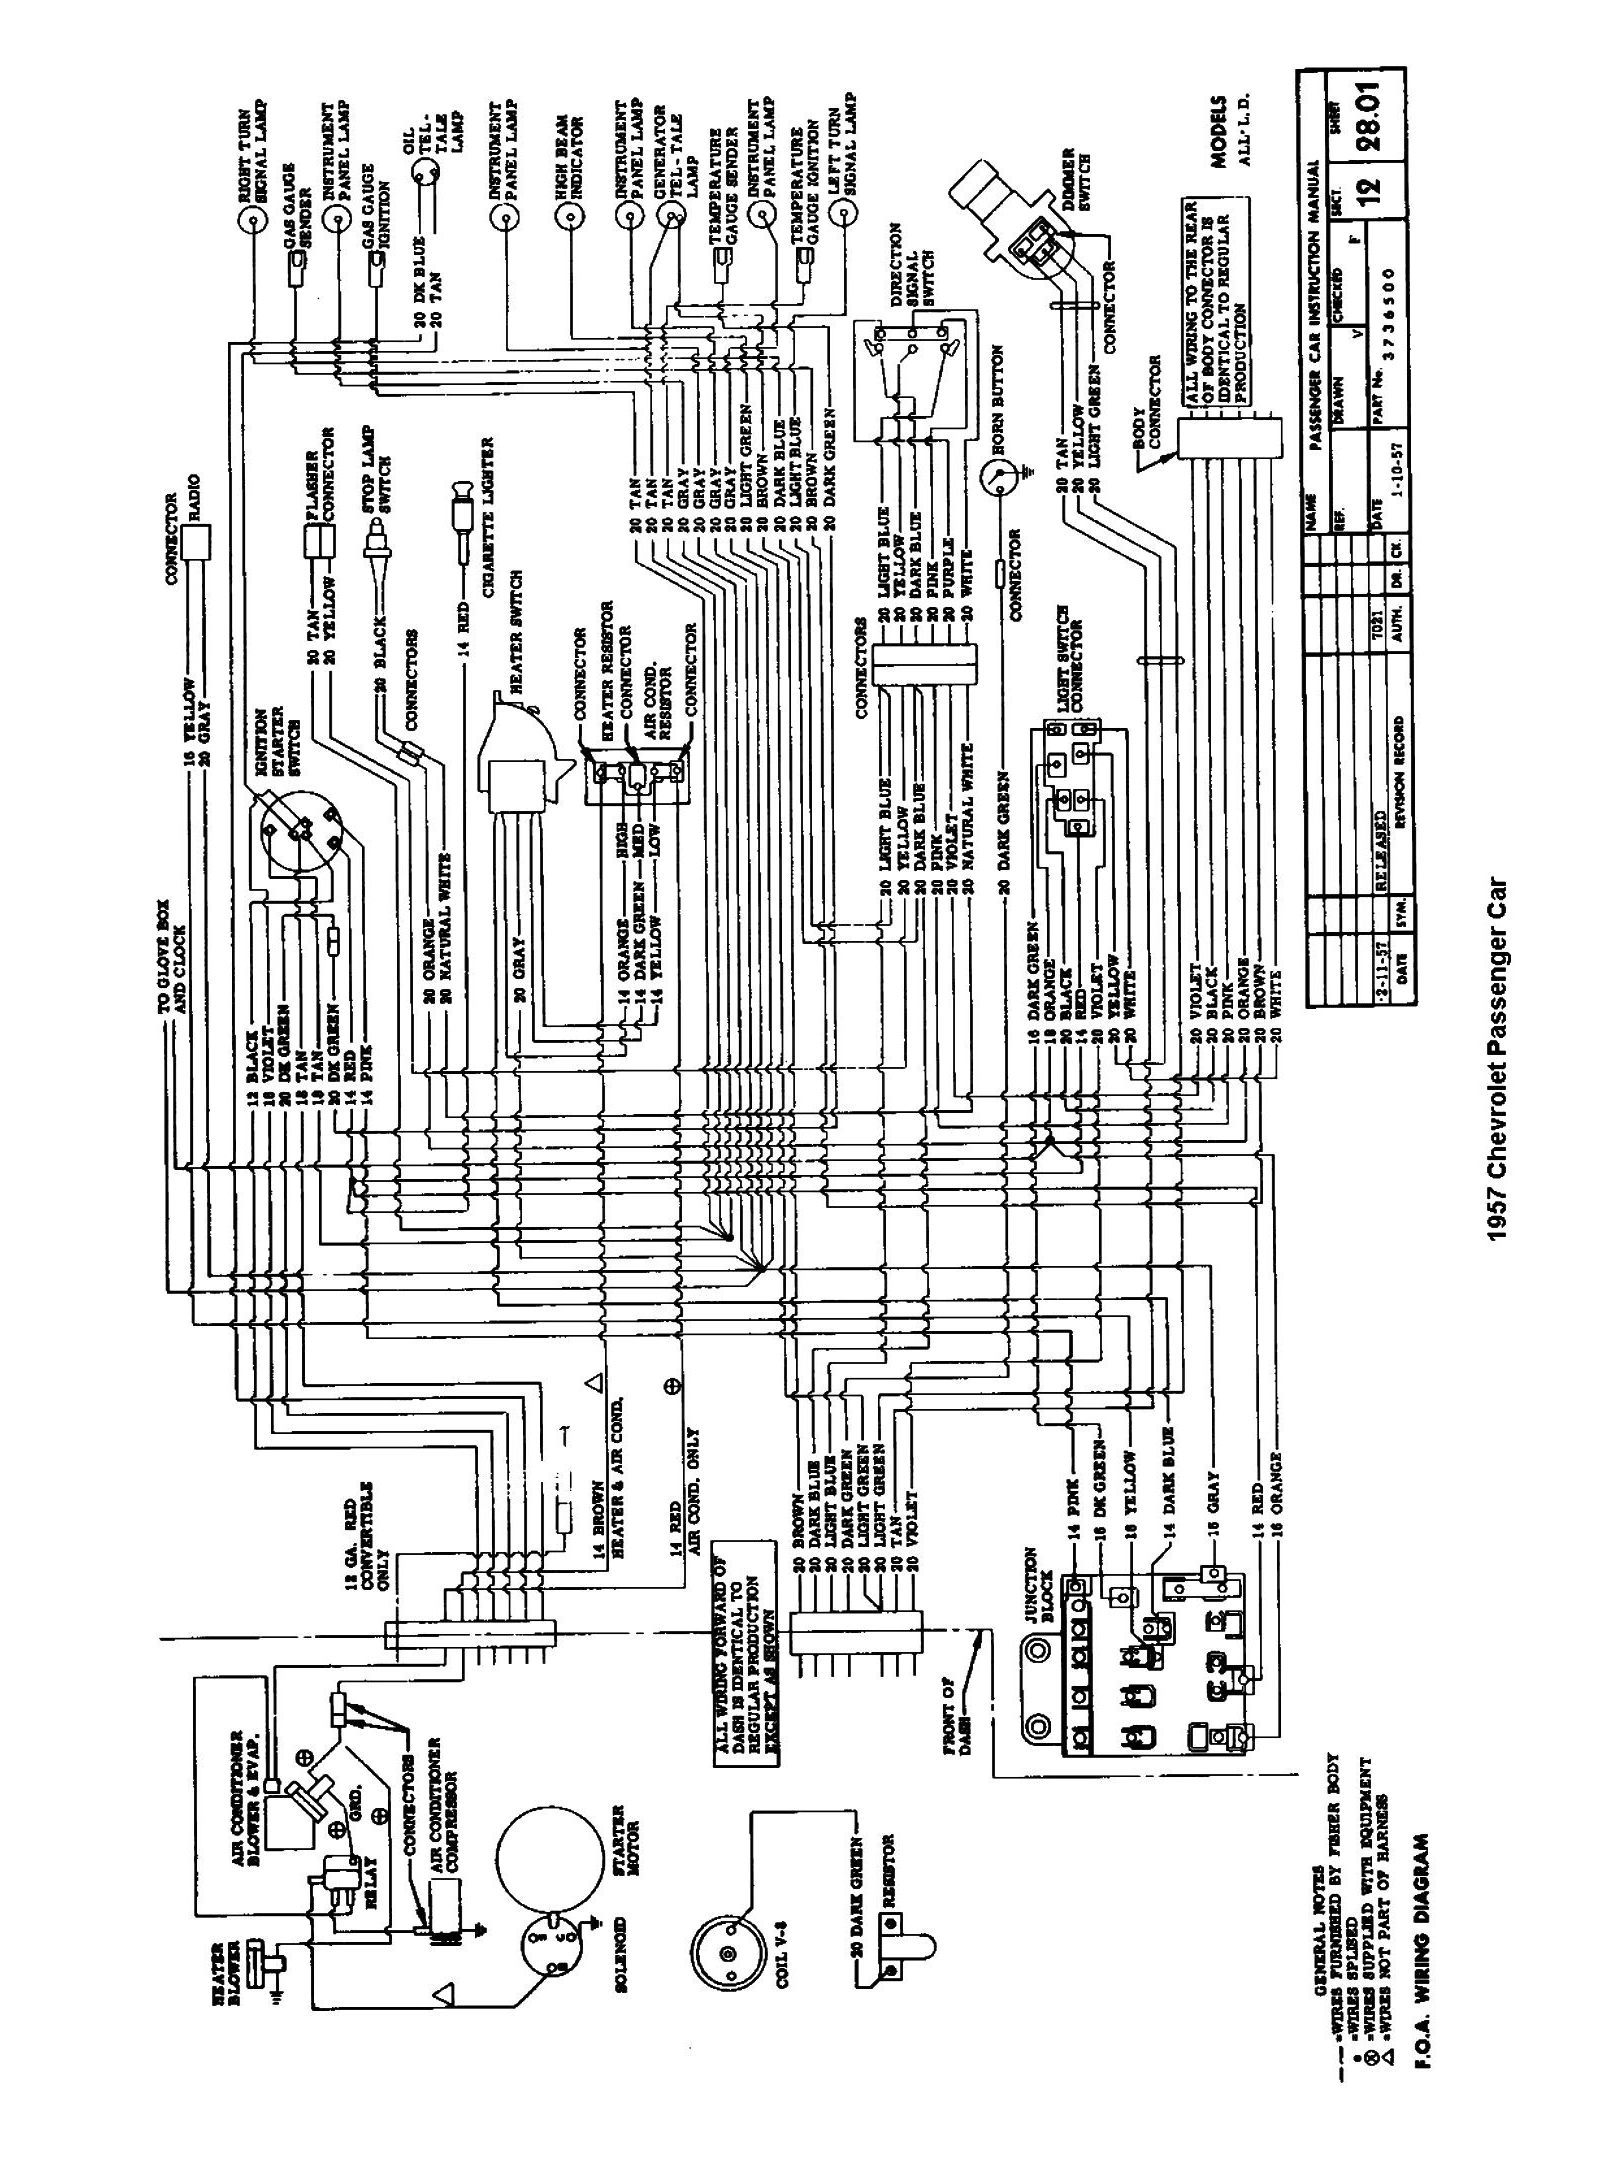 Chevrolet Truck Wiring Heating Diagrams 67 Chevy Diagram 1967 1957 Passenger Car 2